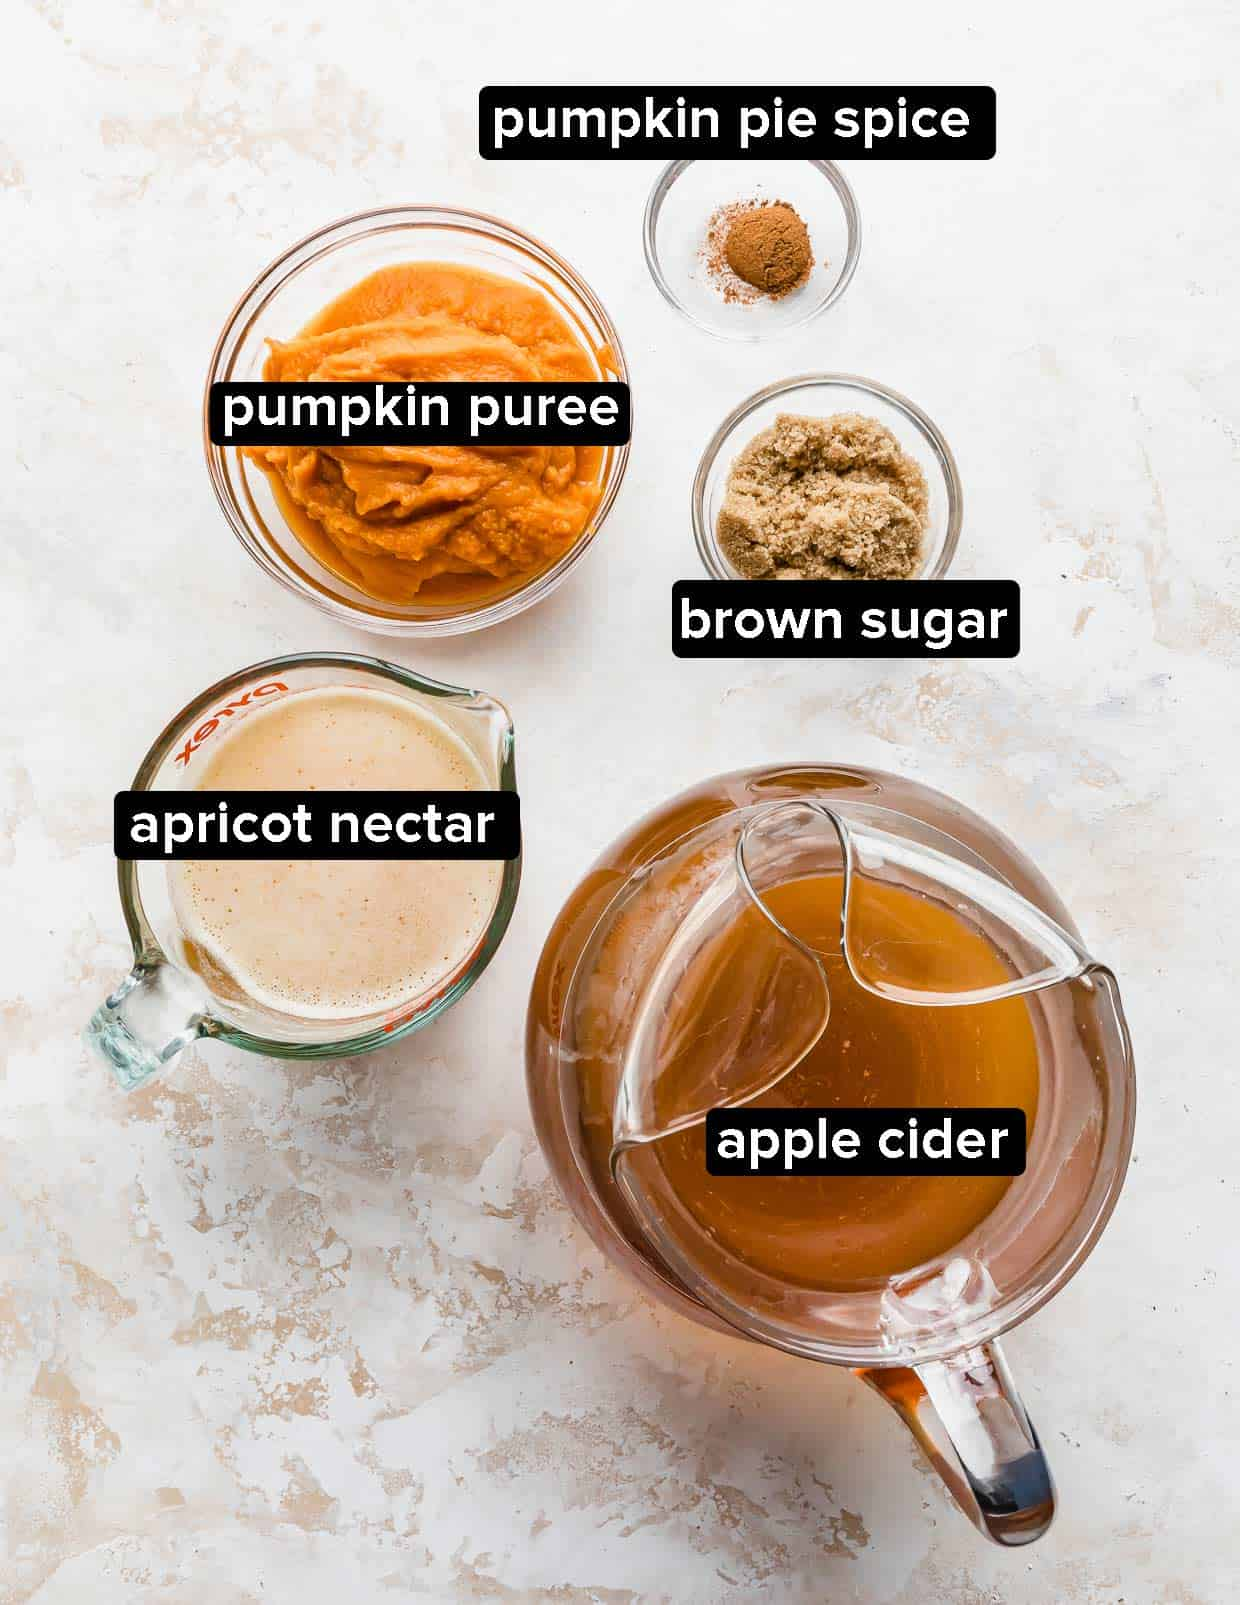 Ingredients used to make Harry Potter pumpkin juice on a textured background.